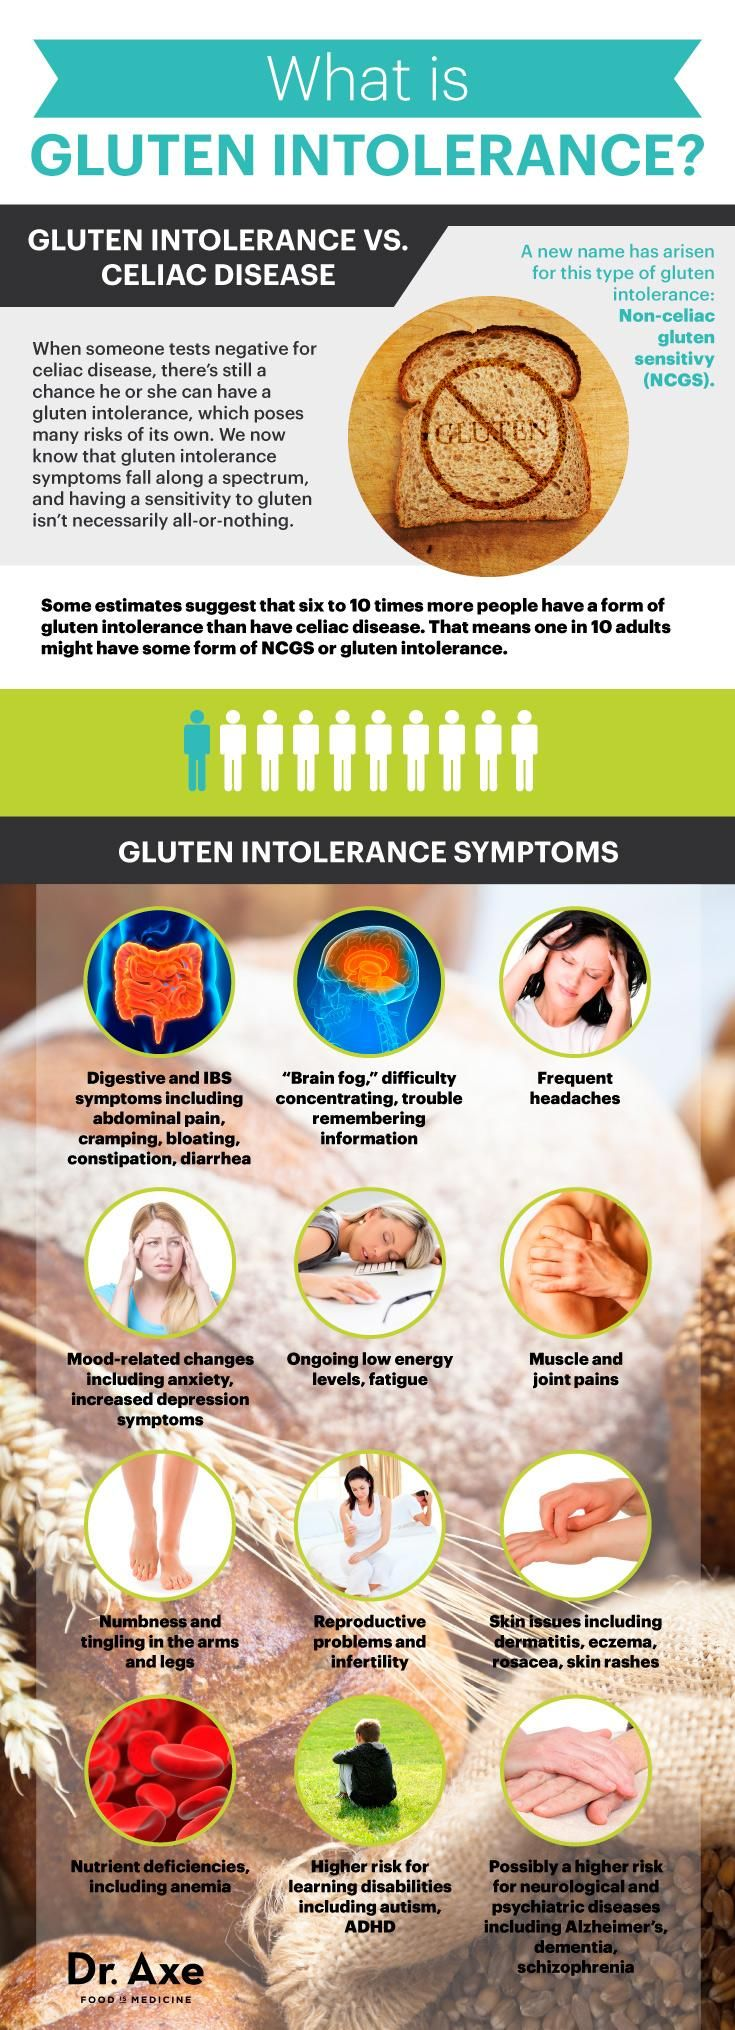 Gluten symptoms? Following an elimination diet is really the best way to test your own personal reaction to gluten.